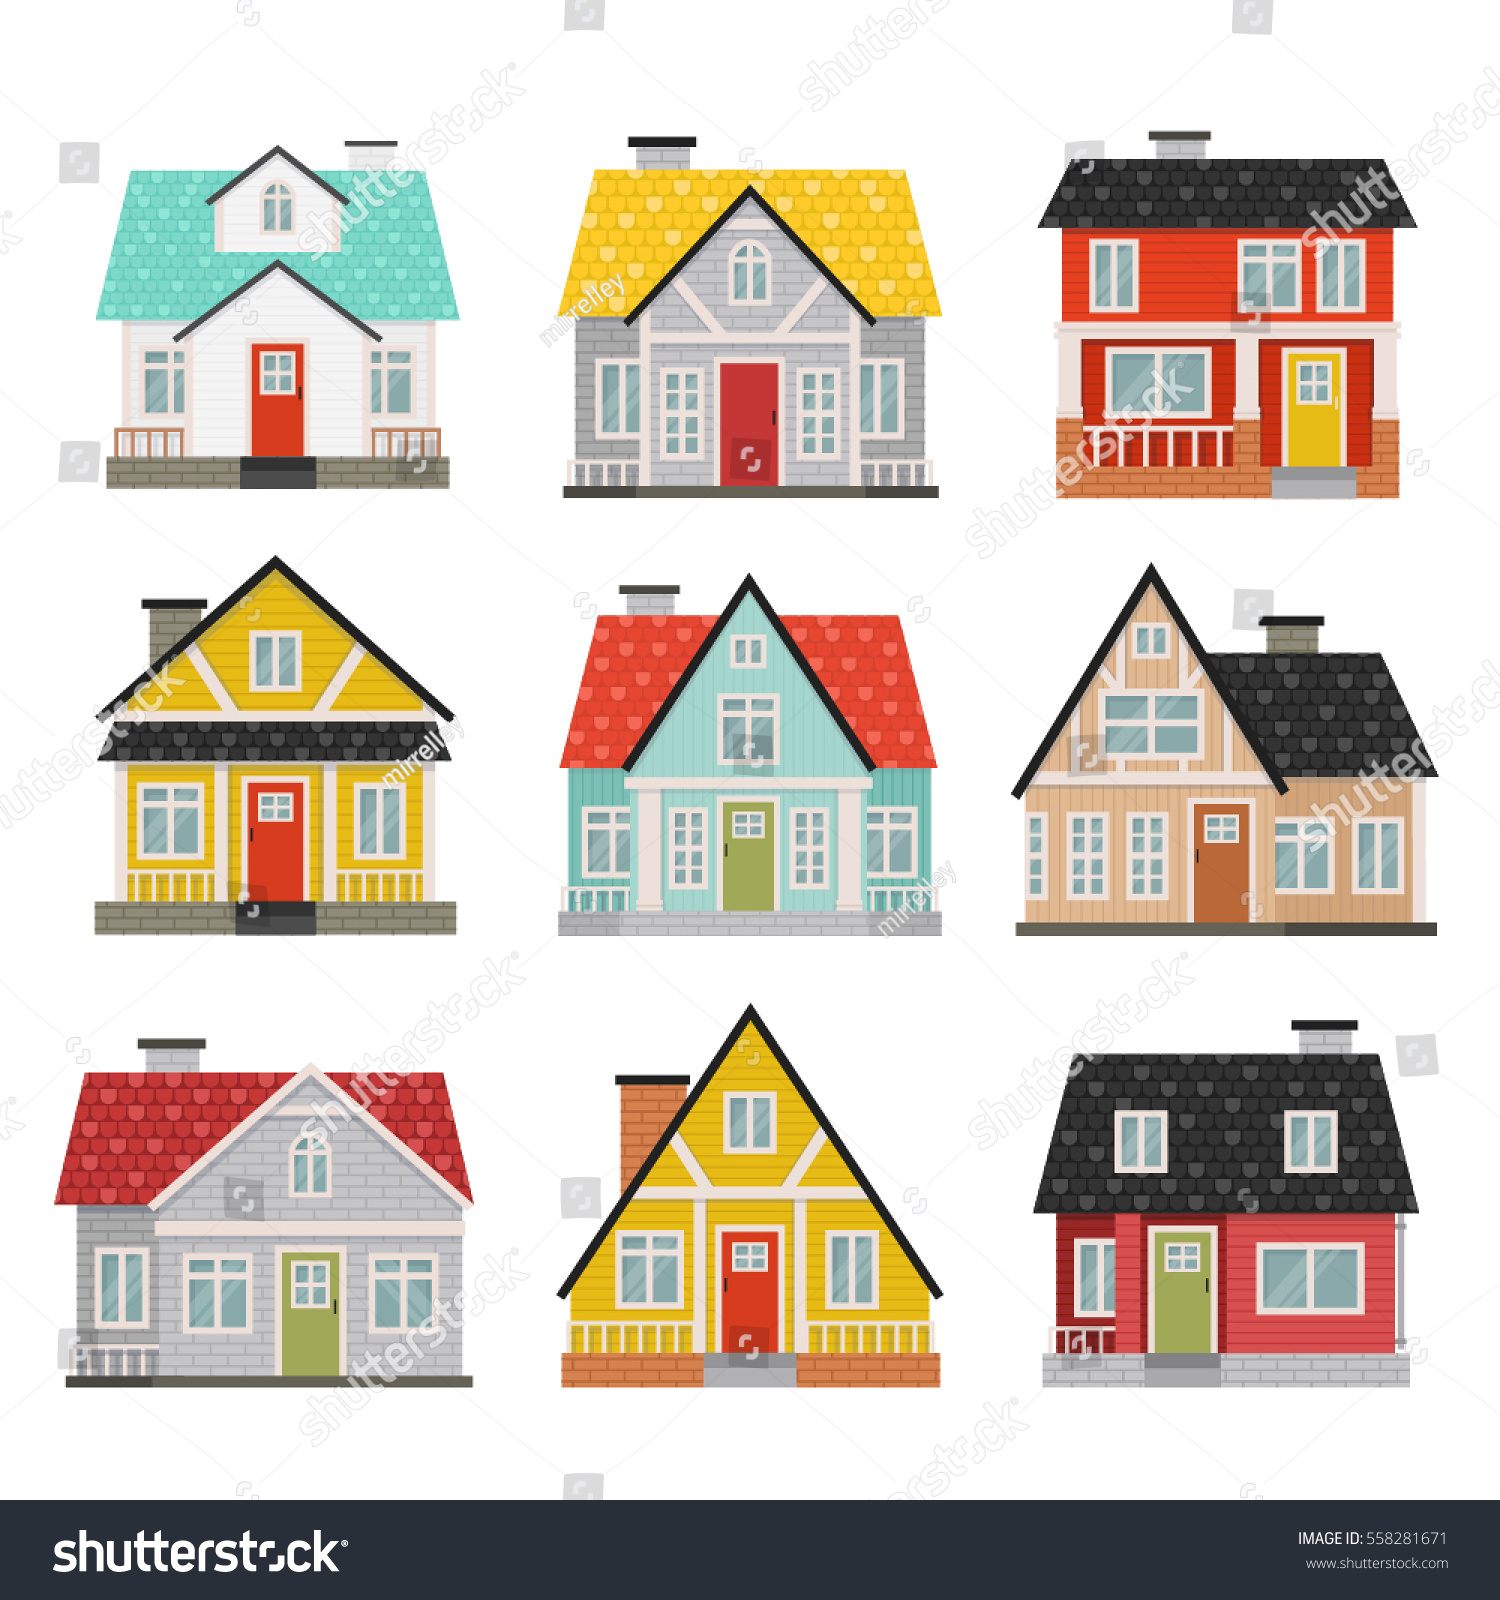 House cartoon simple images galleries for Big cute houses